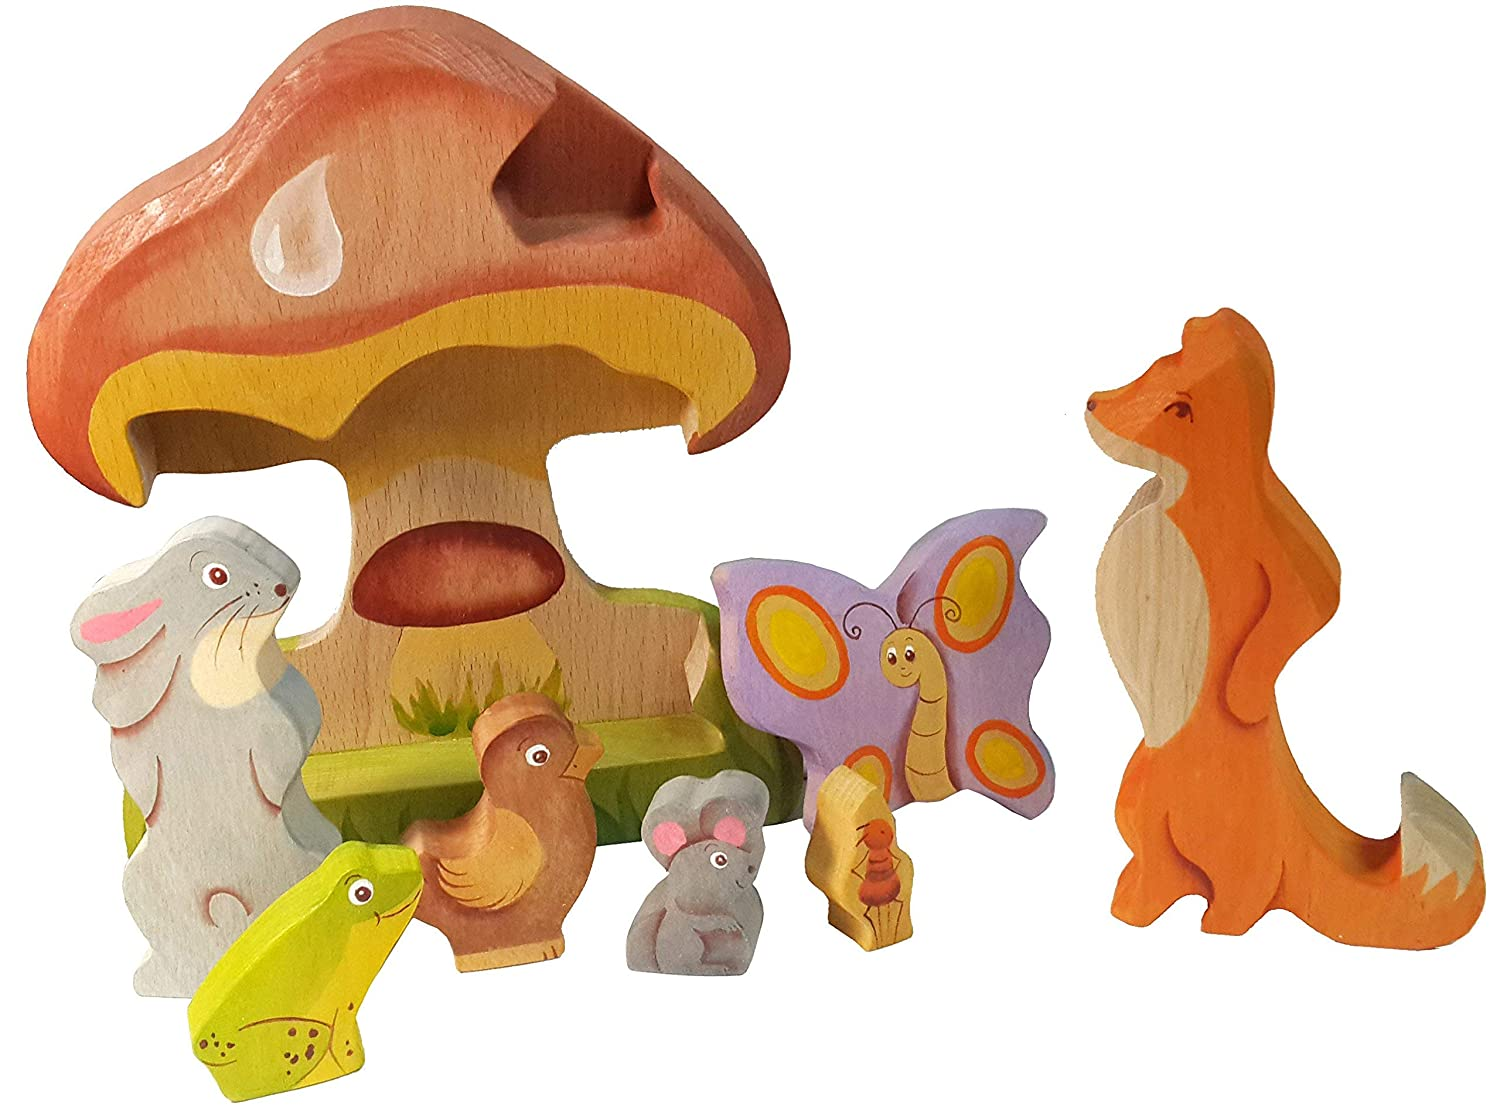 Under The Mushroom fairy tale - 3D Jigsaw Puzzle - Waldorf Toy - Handmade Stackable Wooden Toy inTemenos